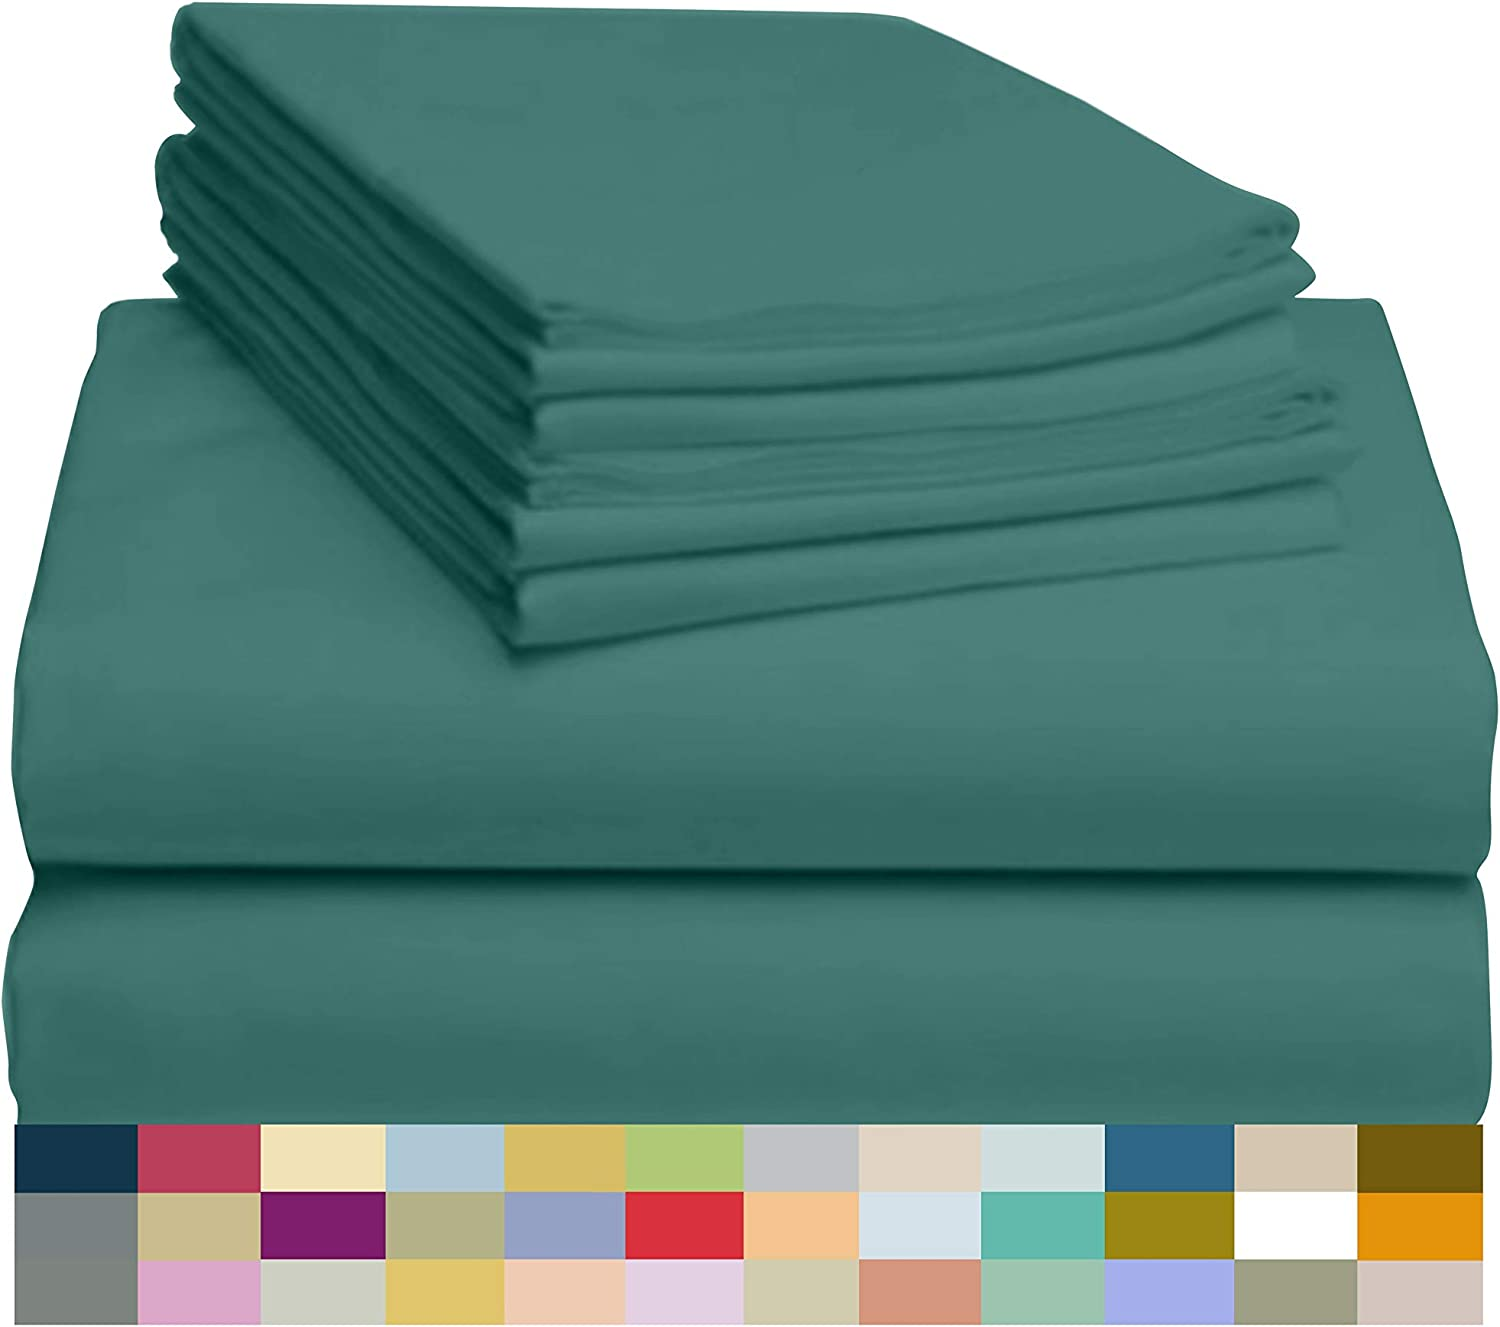 "LuxClub 6 PC Sheet Set Bamboo Sheets Deep Pockets 18"" Eco Friendly Wrinkle Free Sheets Hypoallergenic Anti-Bacteria Machine Washable Hotel Bedding Silky Soft - Teal Queen"